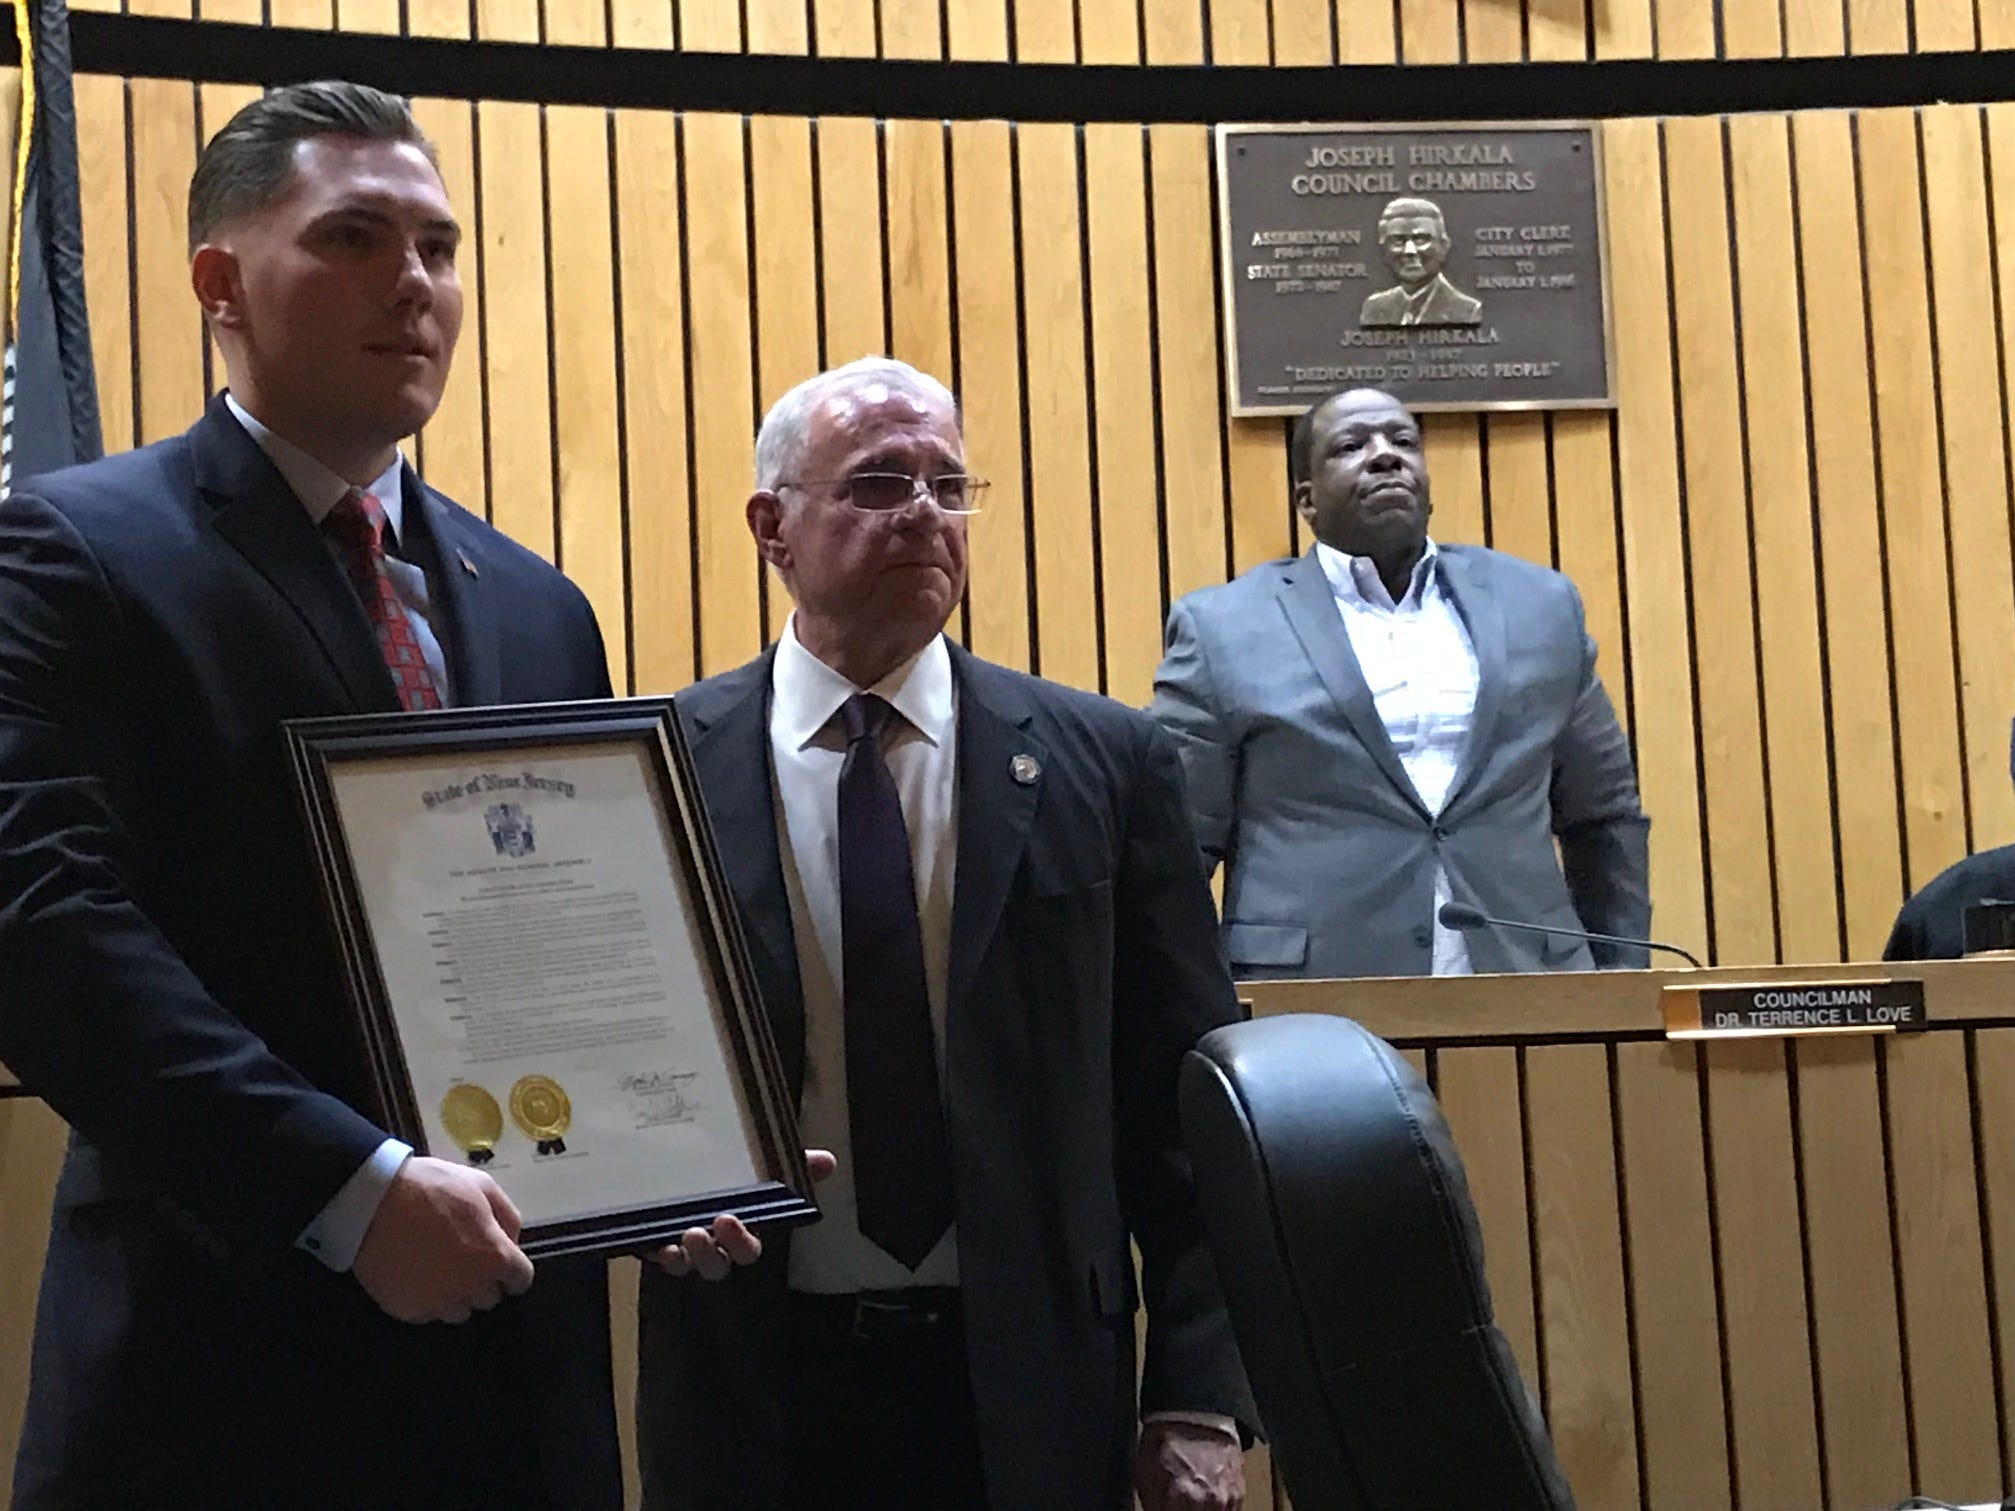 Tyler Hanson receiving a proclamation from the state of New Jersey from City Council President/State assemblyman Gary Schaer of rhis heroic actions on Dec. 31. Hanson rescued a Passaic family froma burning building.